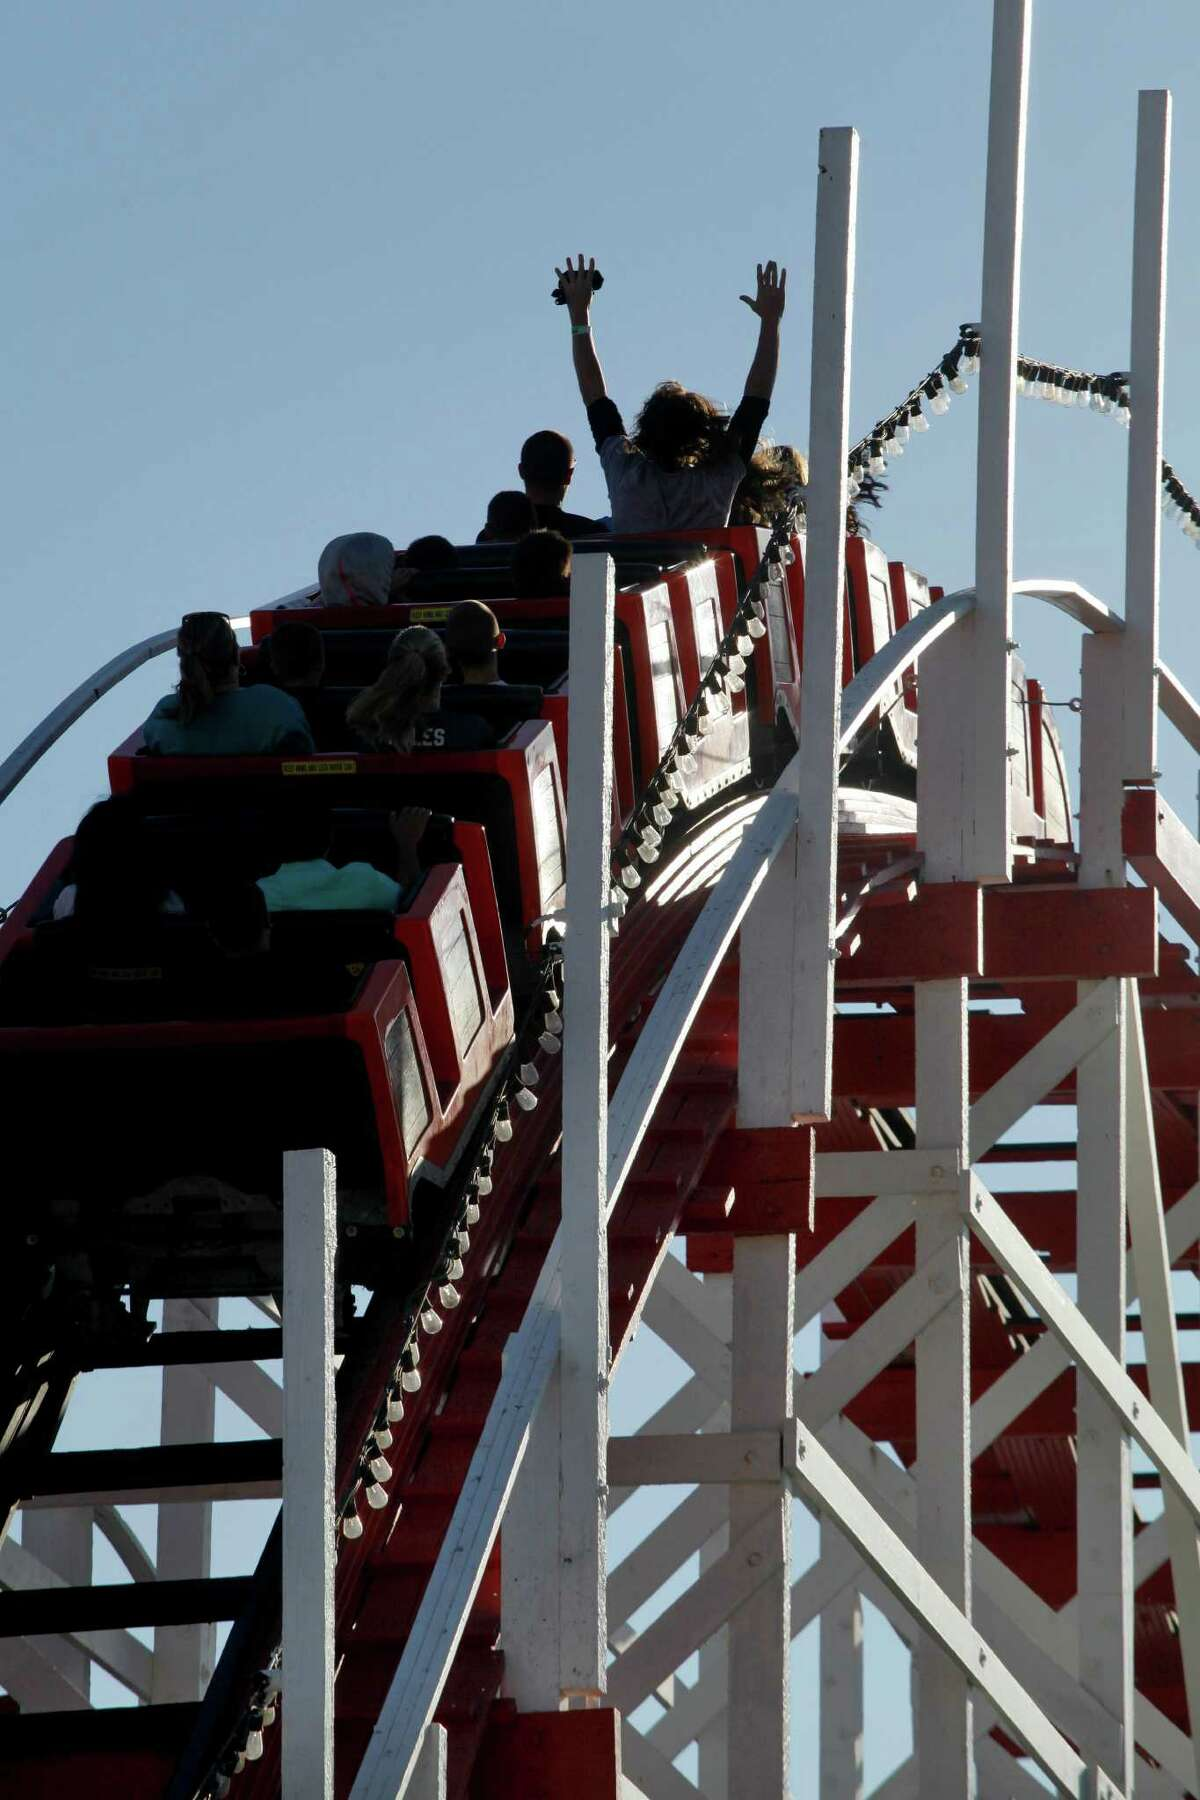 Riders enjoy the Giant Dipper wooden roller coaster at the Santa Cruz Beach Boardwalk in Santa Cruz, Calif., on Wednesday, July 30, 2014. It's over 90 years old and is a National Historic Monument.